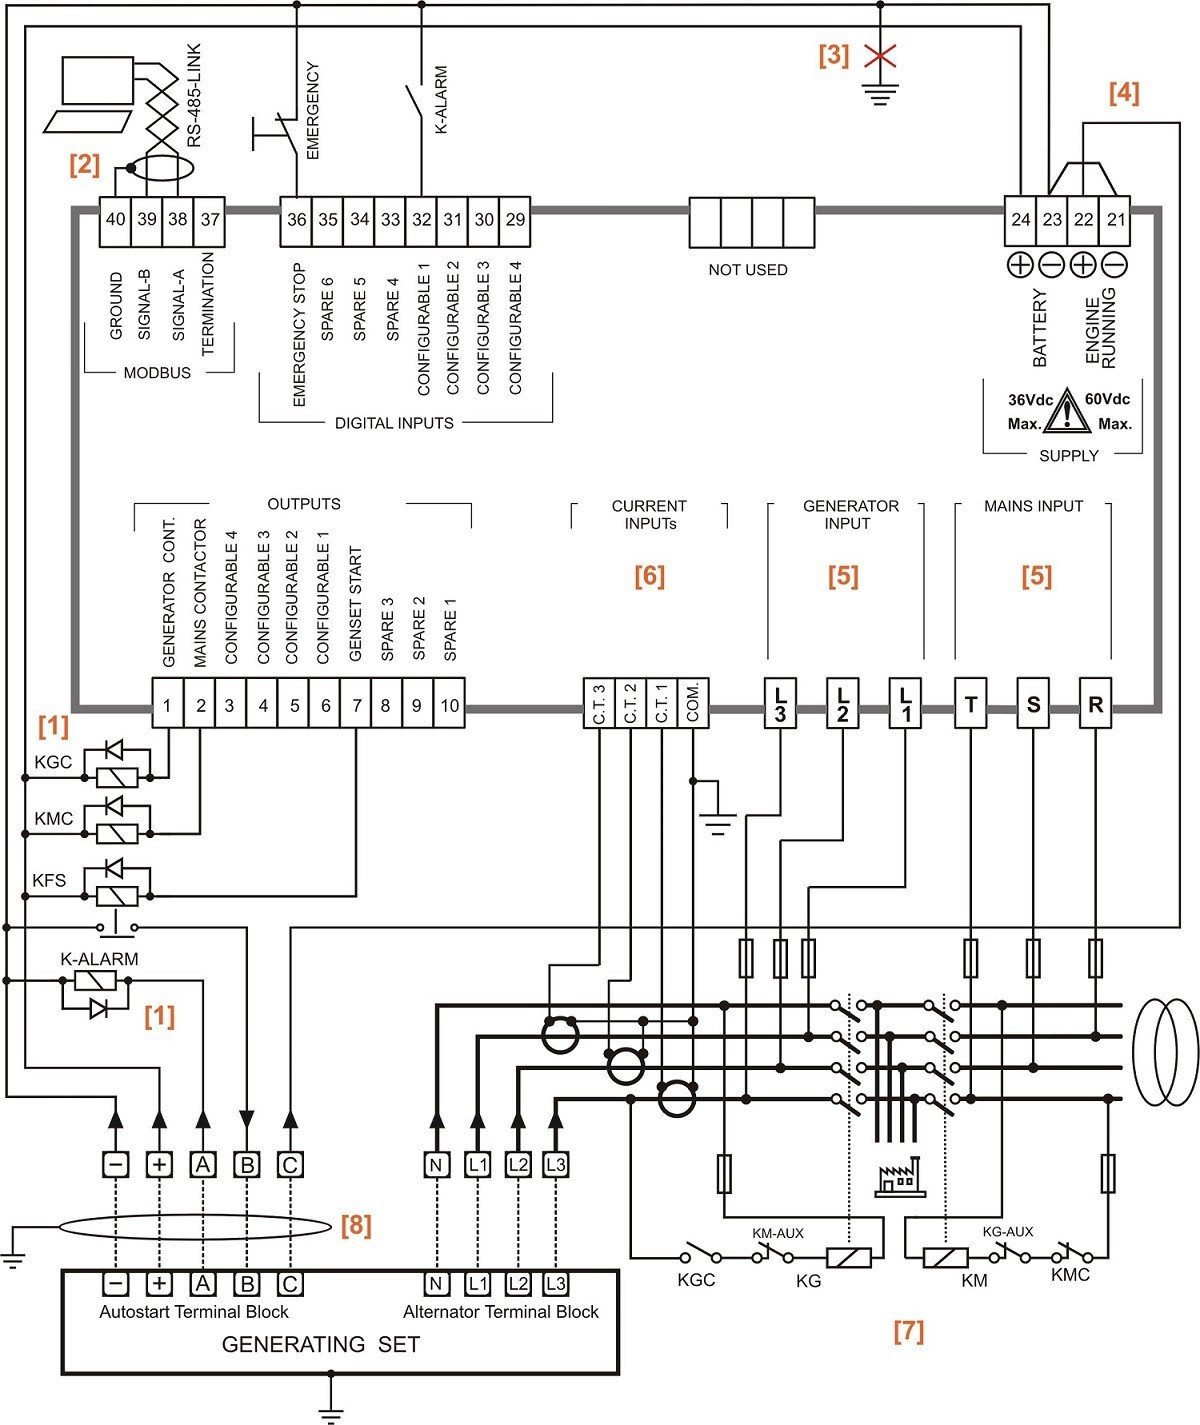 20 hp briggs and stratton wiring diagram free download 3 pole transfer switch wiring diagram collection 50 30 20 rv wiring diagram free download